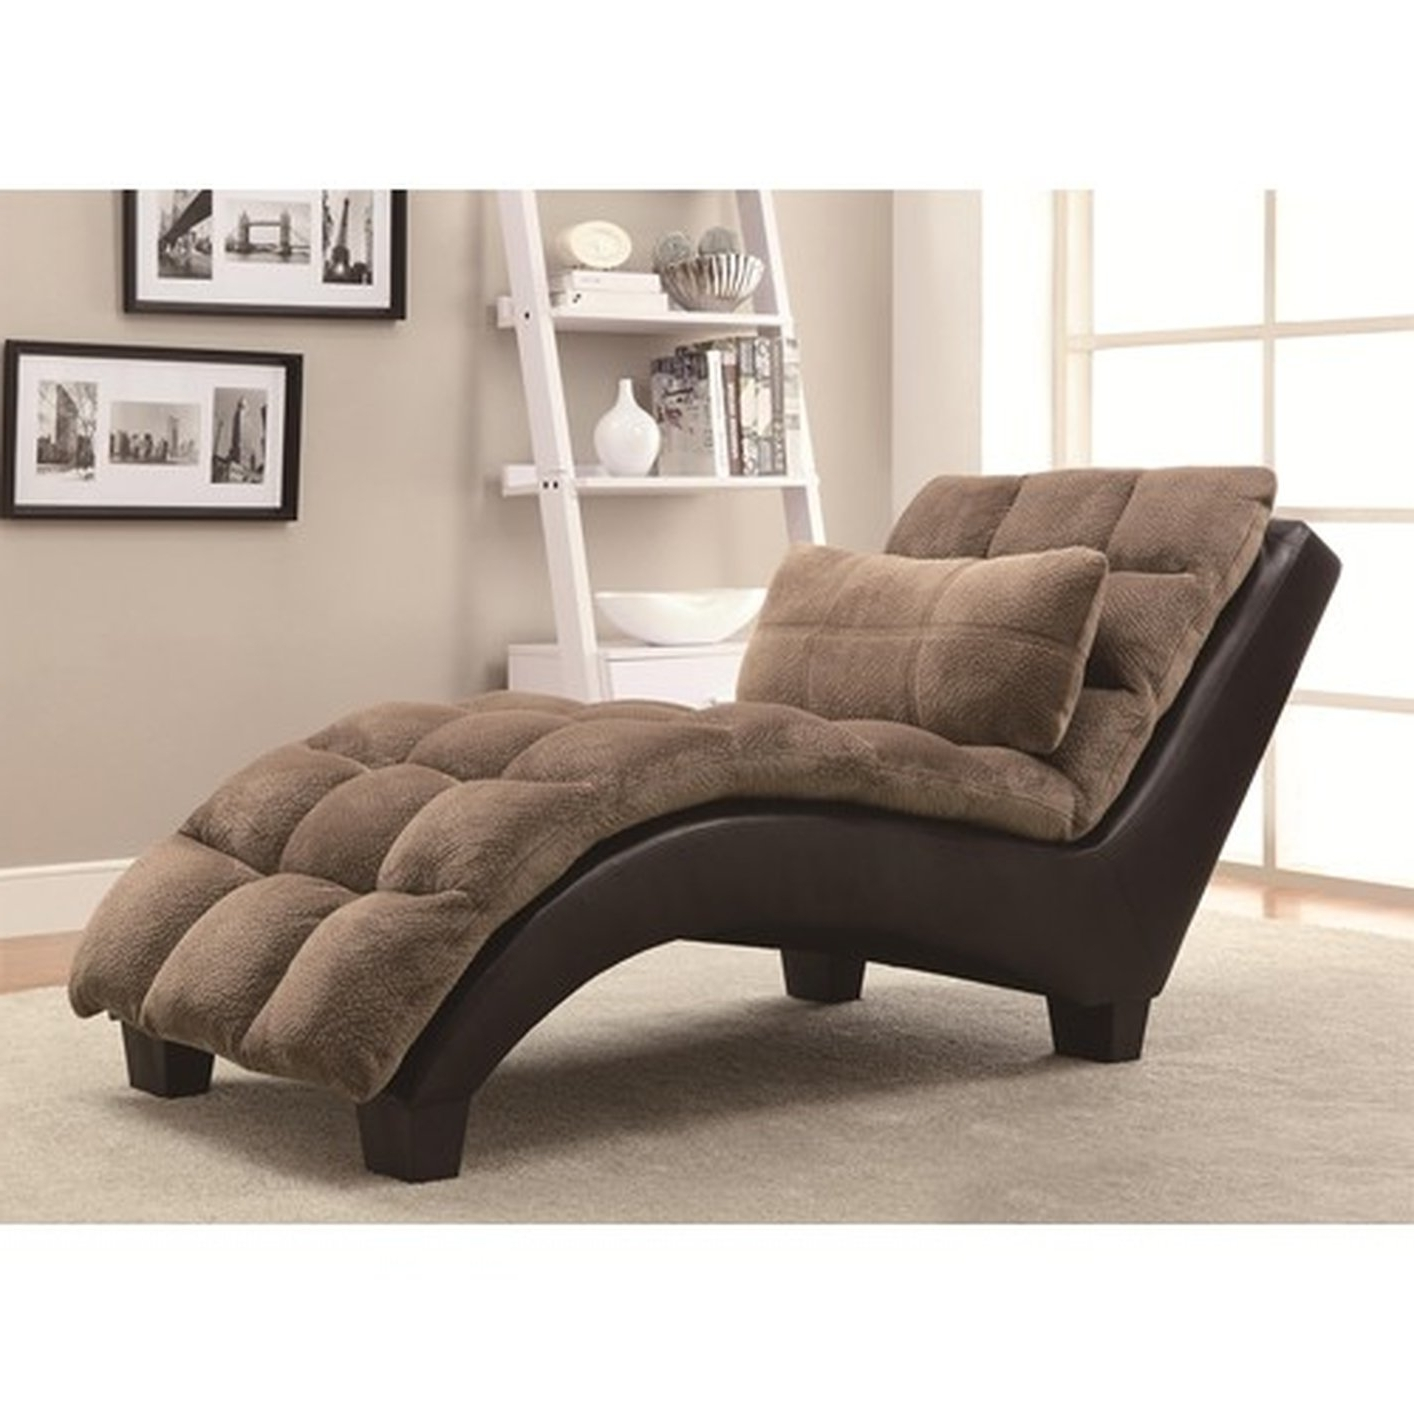 Most Popular Brown Fabric Chaise Lounge – Steal A Sofa Furniture Outlet Los Inside Brown Chaise Lounges (View 11 of 15)